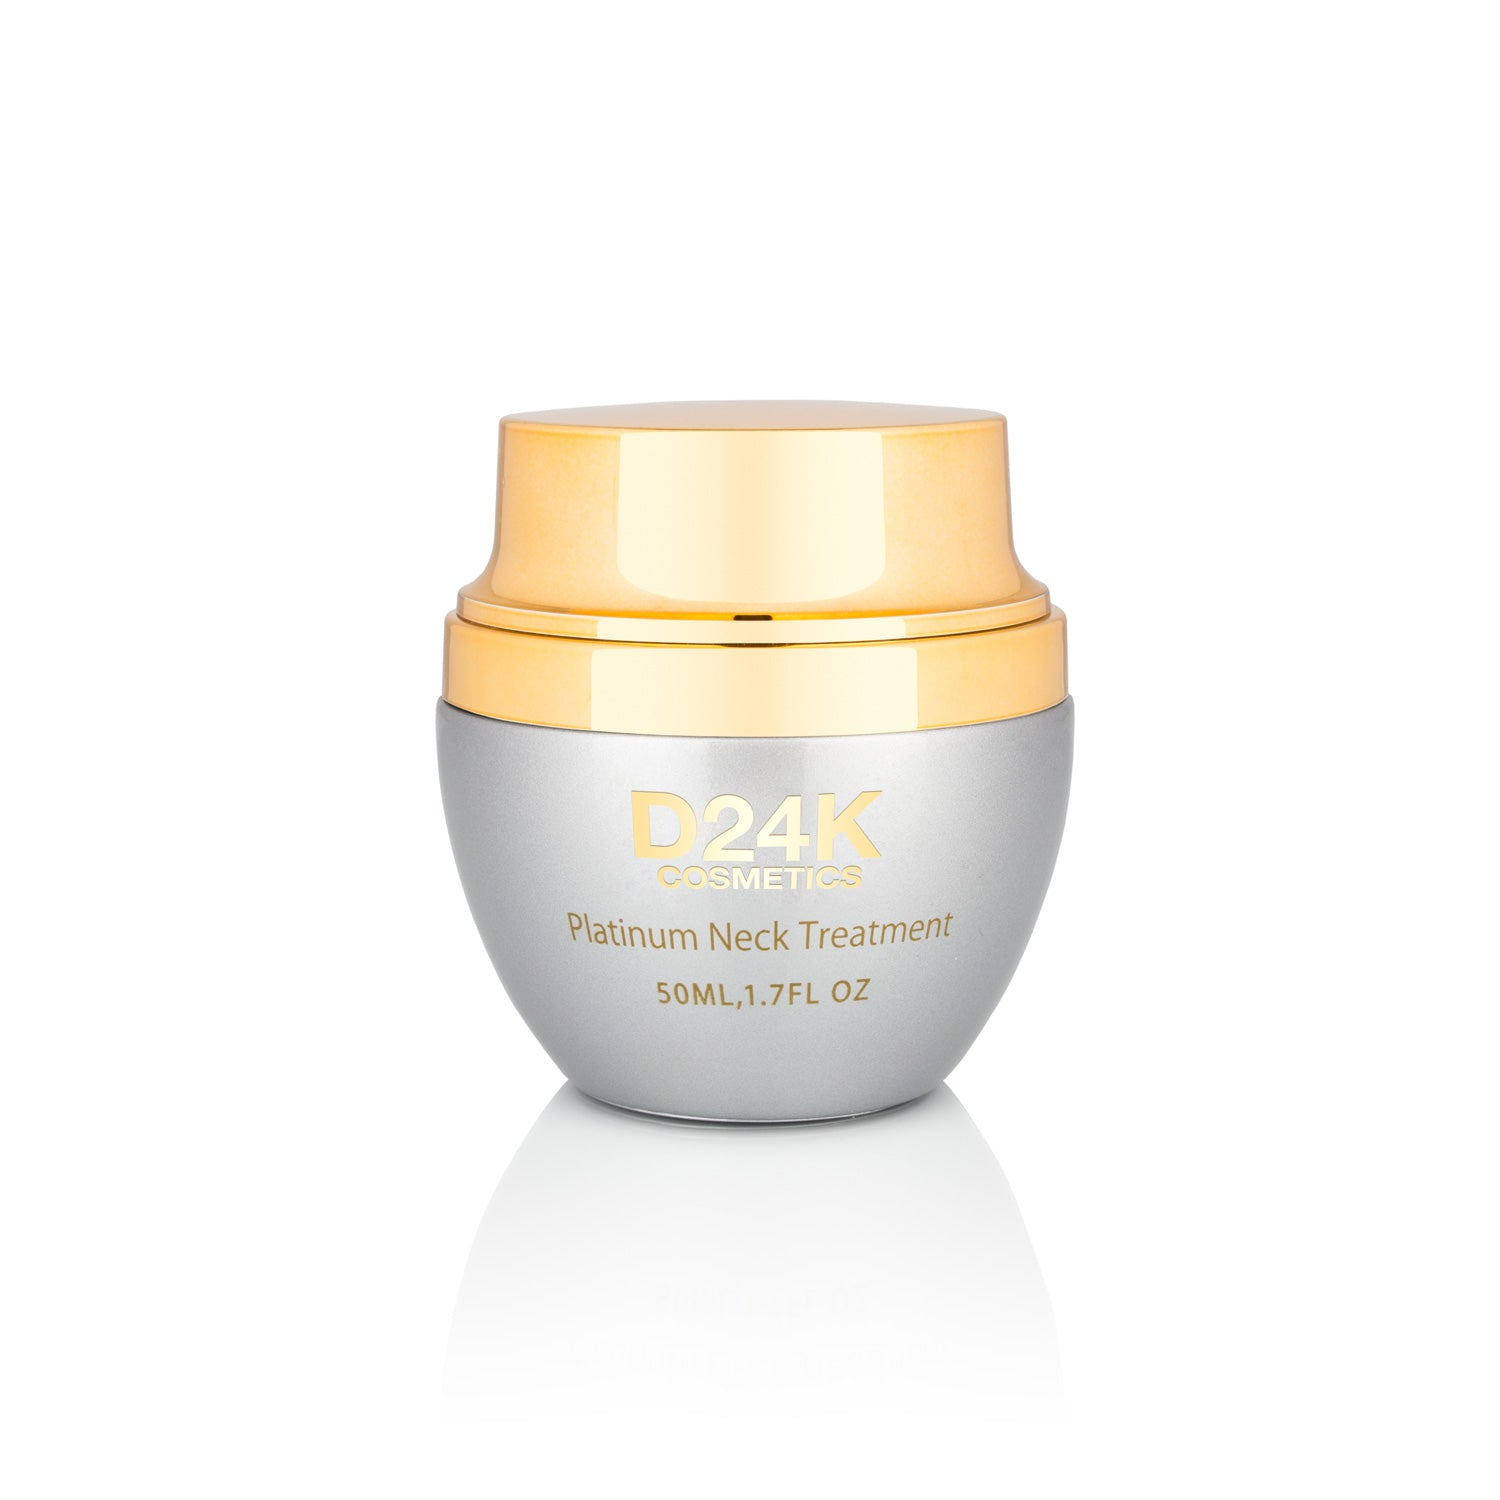 D24K by D'OR - Platinum Neck Treatment